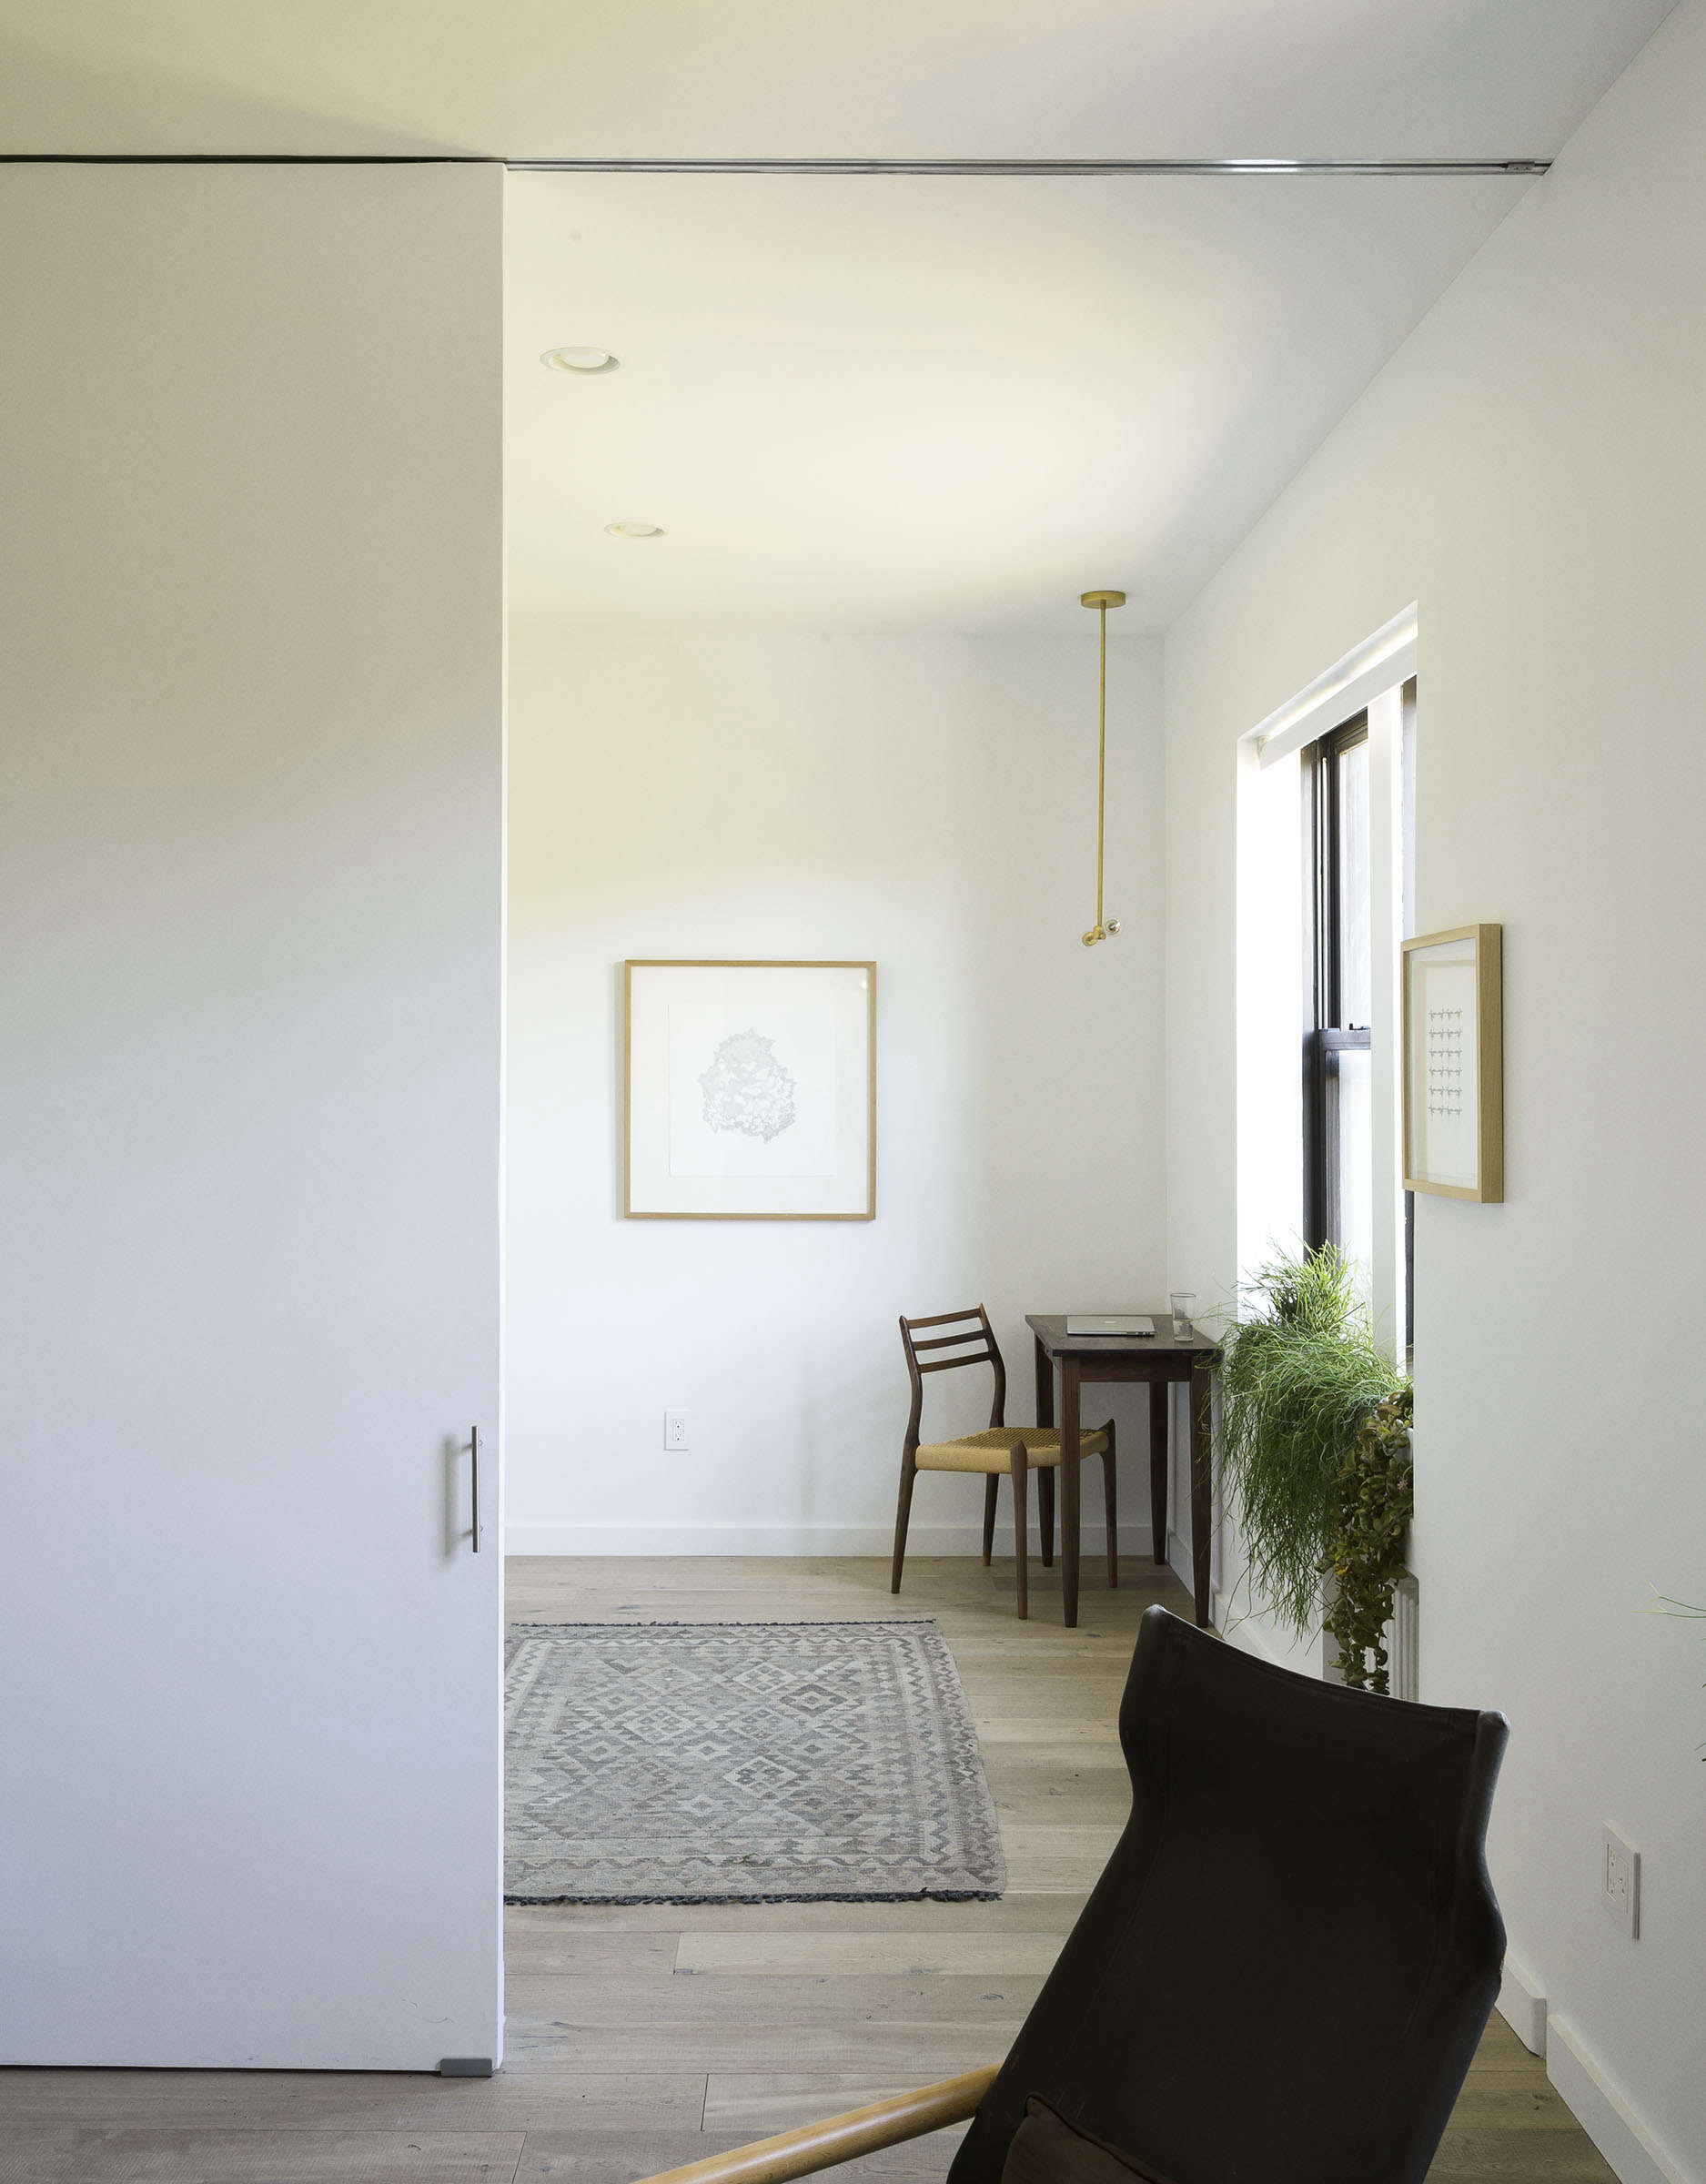 Standout small apartment remodel for a family of four: Jacqueline-Schmidt and David Friedlander's 675-square-foot Brooklyn quarters, Matthew-Williams-photo | Remodelista